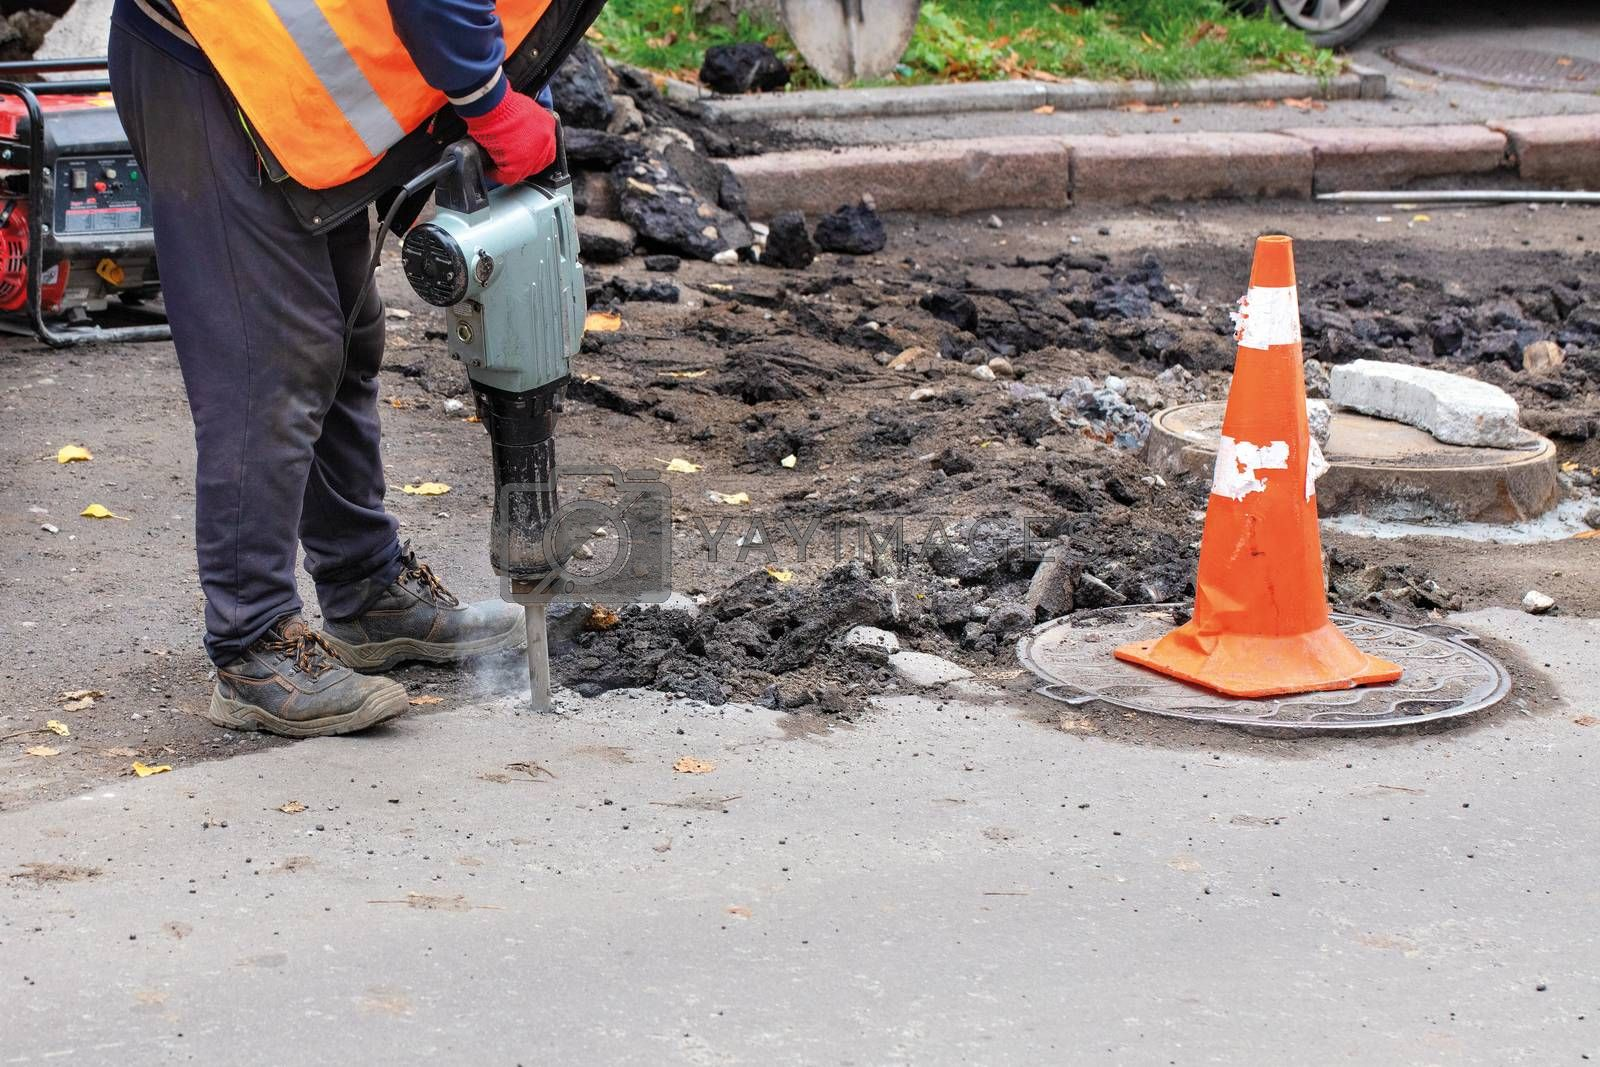 A road worker, dressed in reflective clothing, uses an electric jackhammer to rip old asphalt off the road and uses a gasoline generator, copy space.